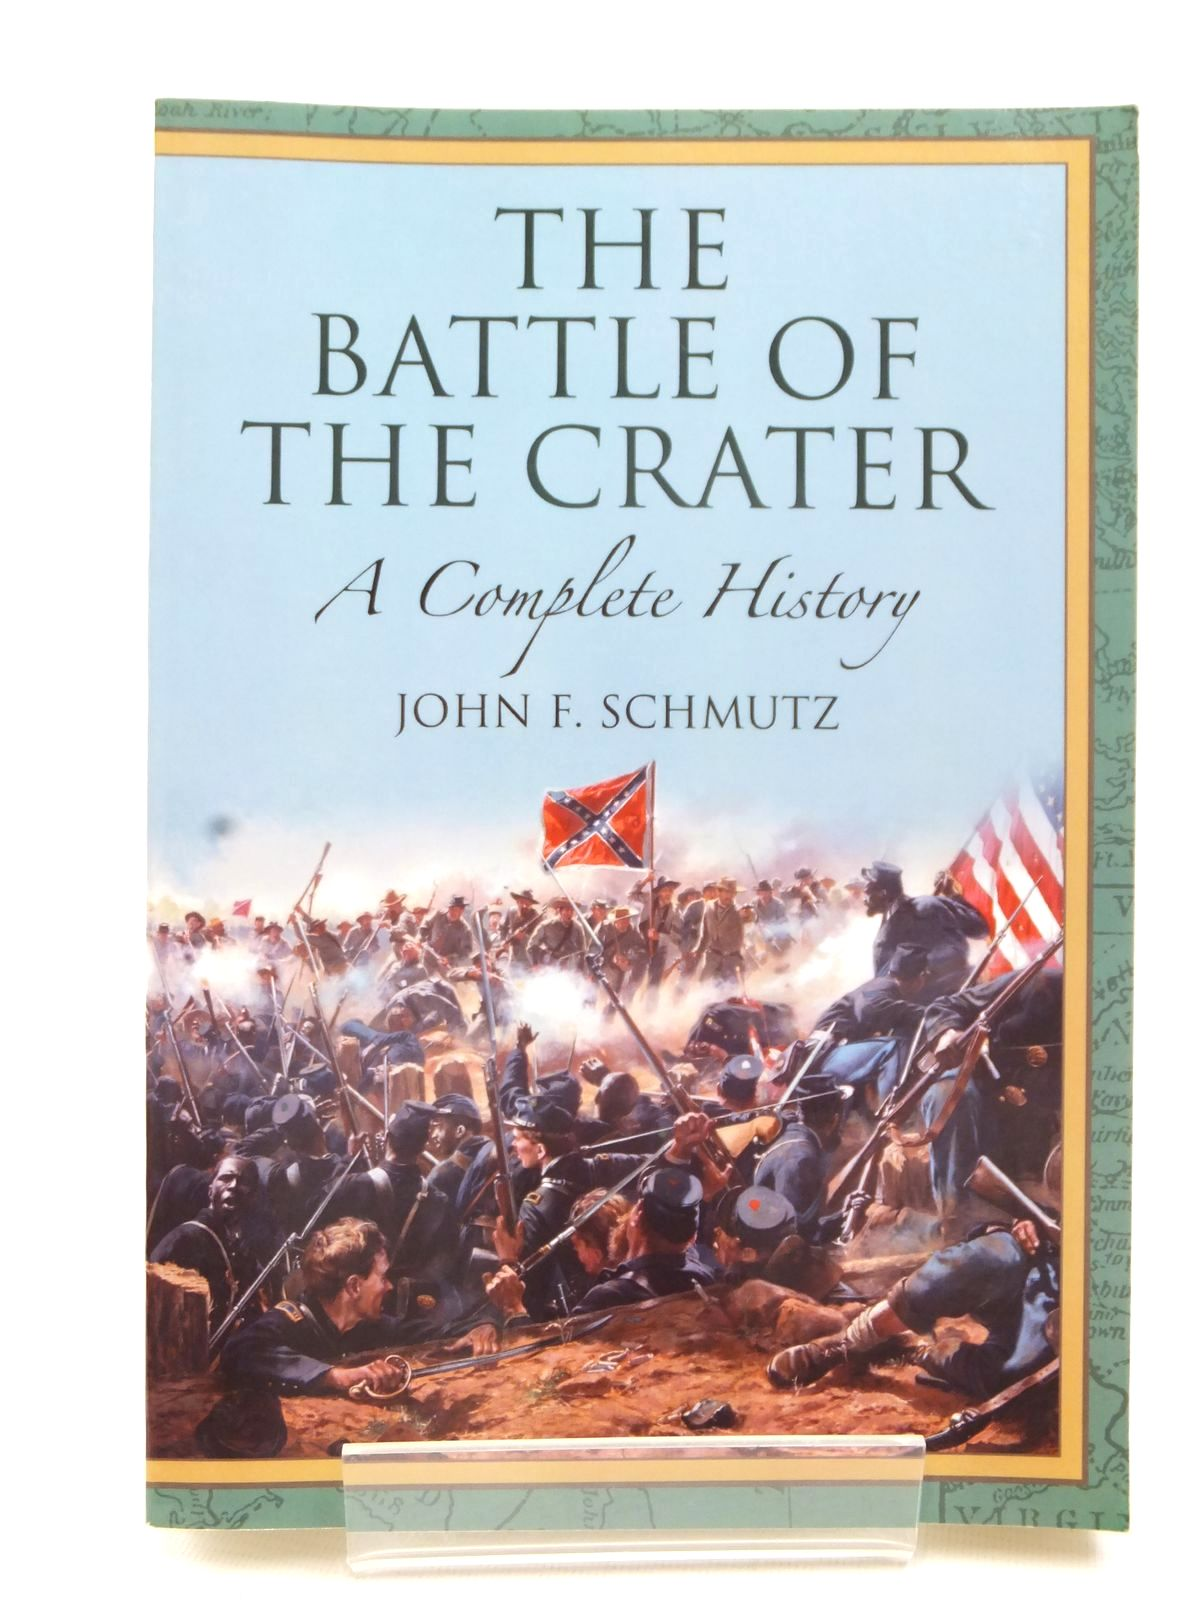 Photo of THE BATTLE OF THE CRATER written by Schmutz, John F. published by McFarland & Company, Inc. (STOCK CODE: 1609416)  for sale by Stella & Rose's Books